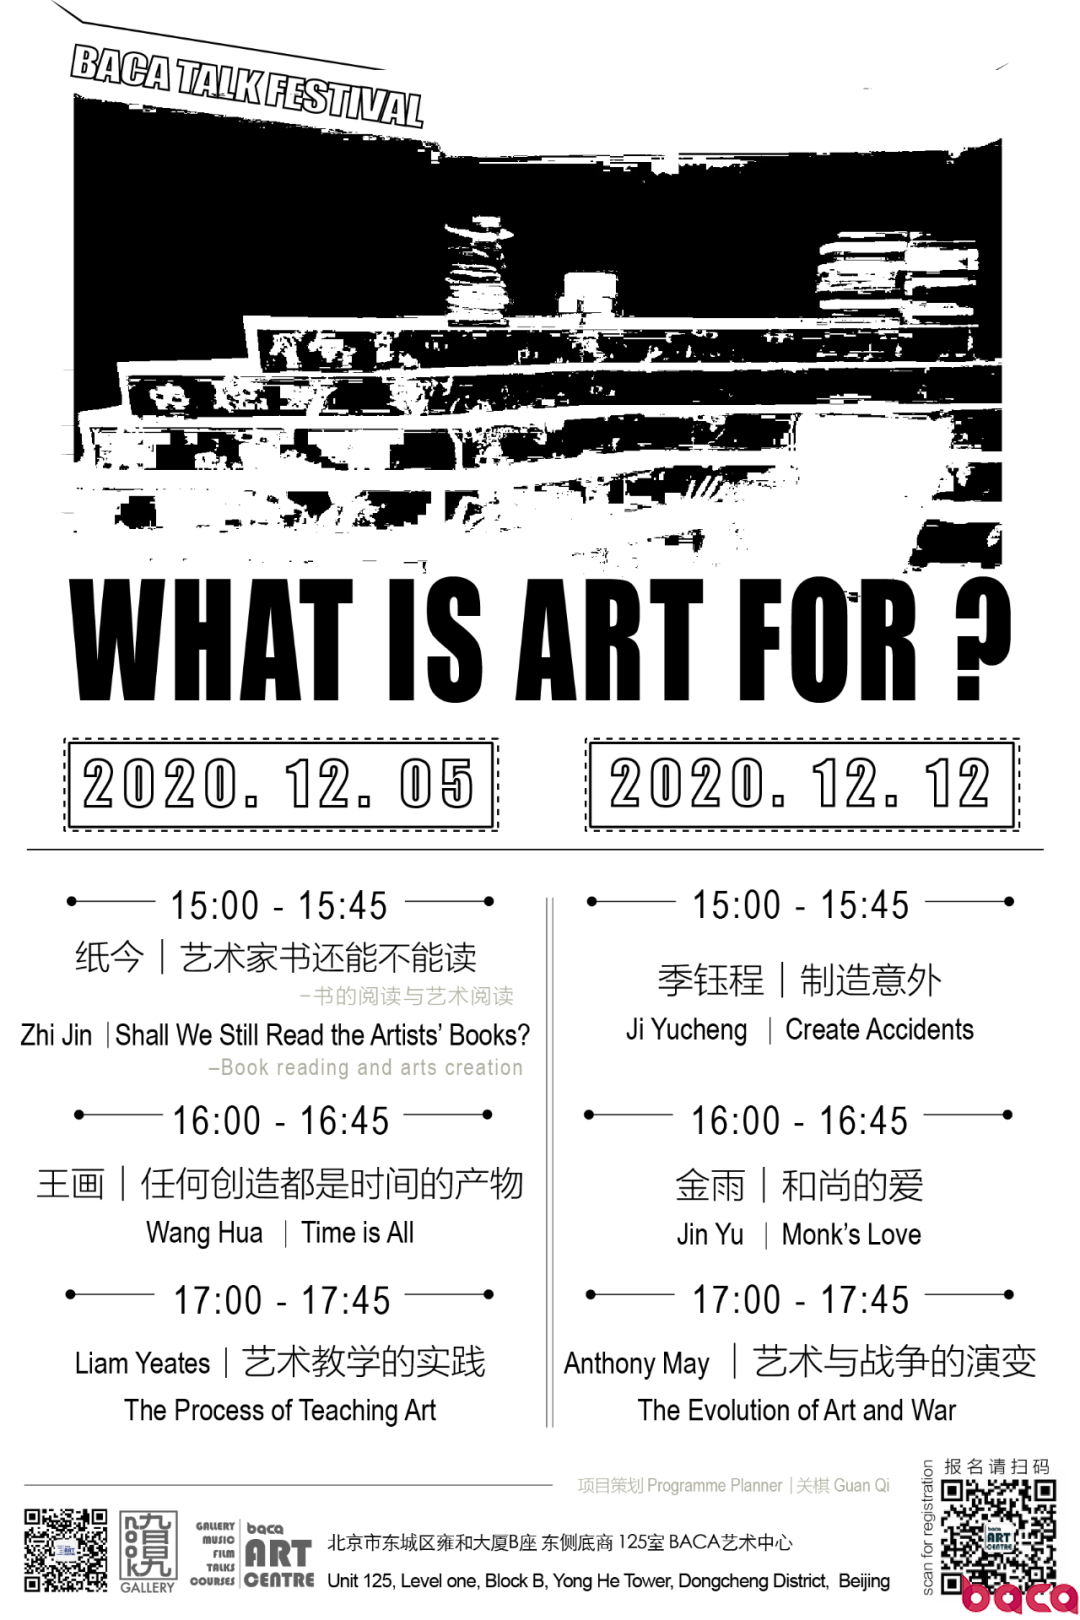 【Baca Talk Festival】What Is Art For? Series 2